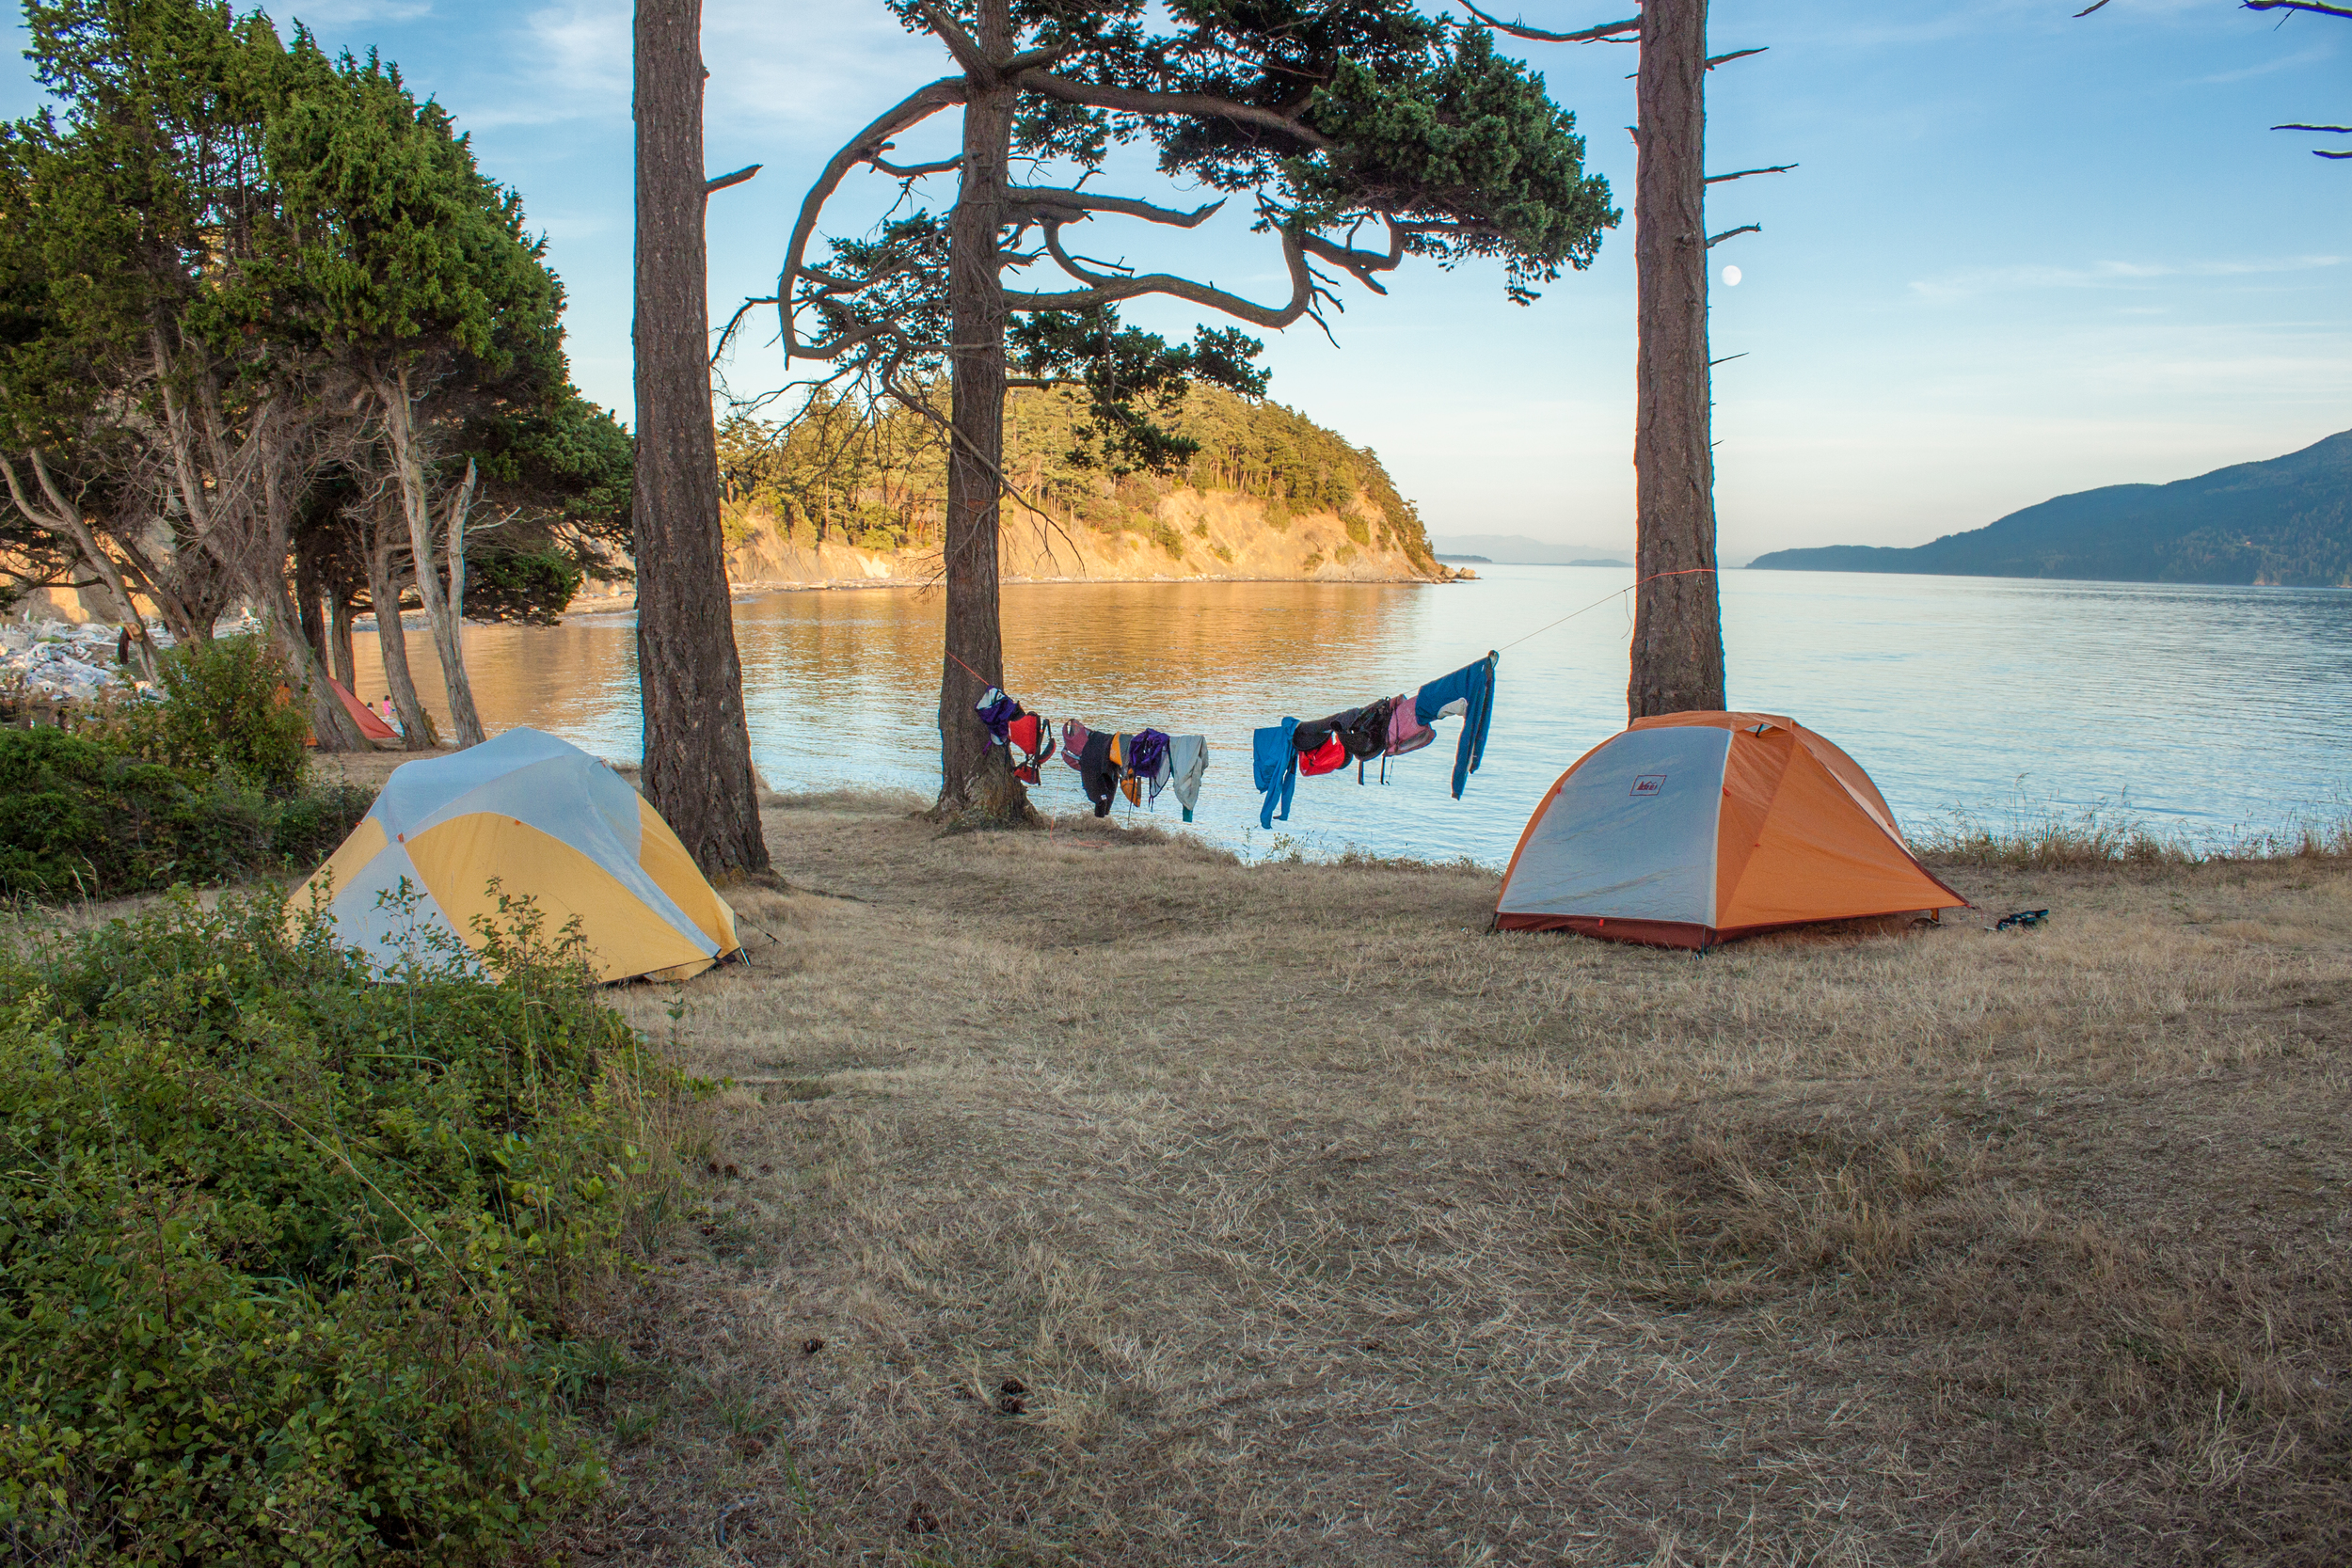 Our campsite on a bluff. We could not have asked for better weather.